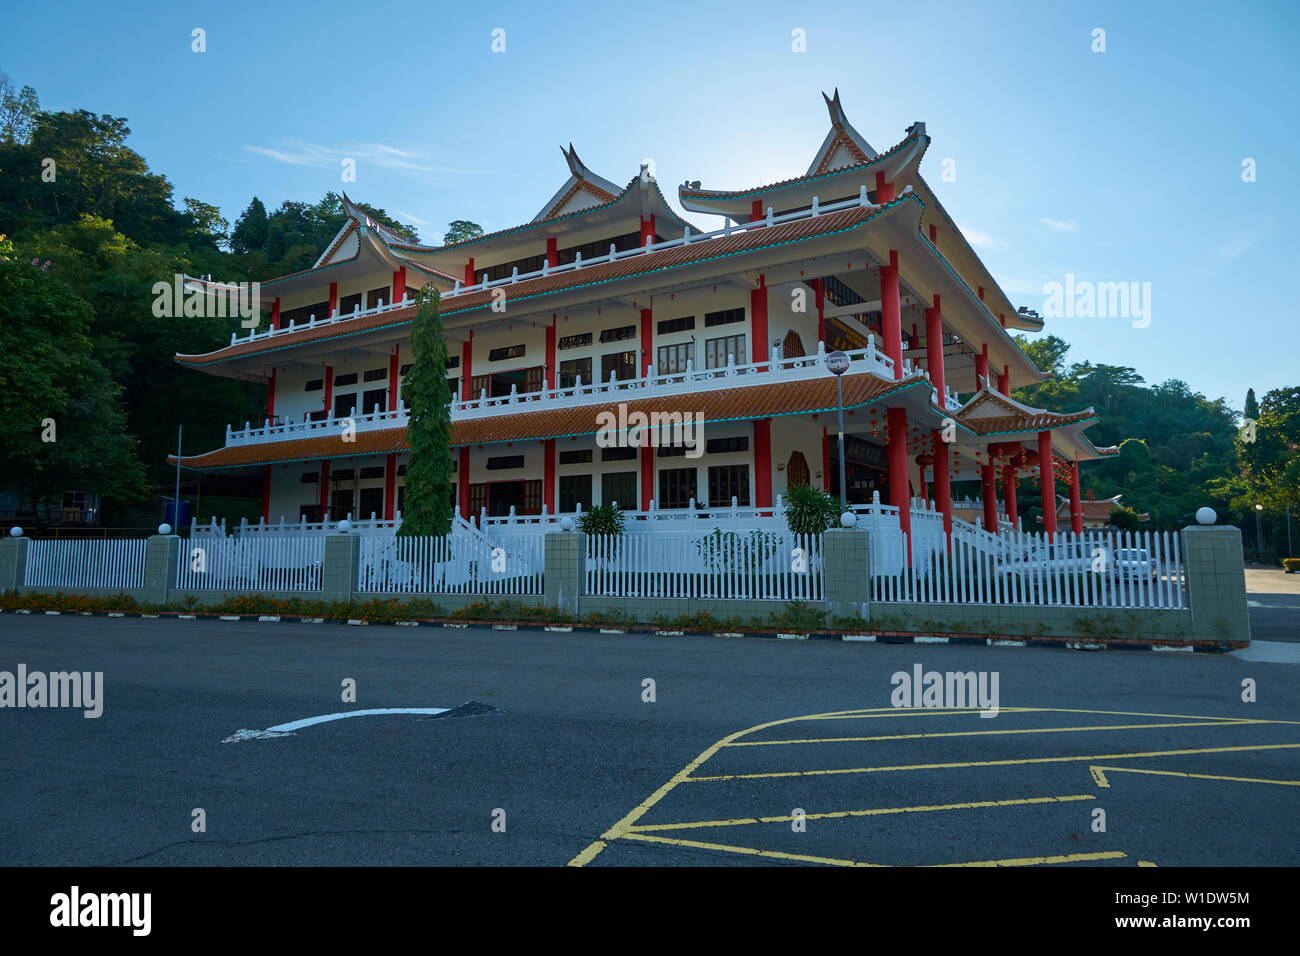 The main meeting hall at the Che Sui Khor Chinese temple in Kota Kinabalu, Borneo, Malaysia. - Stock Image